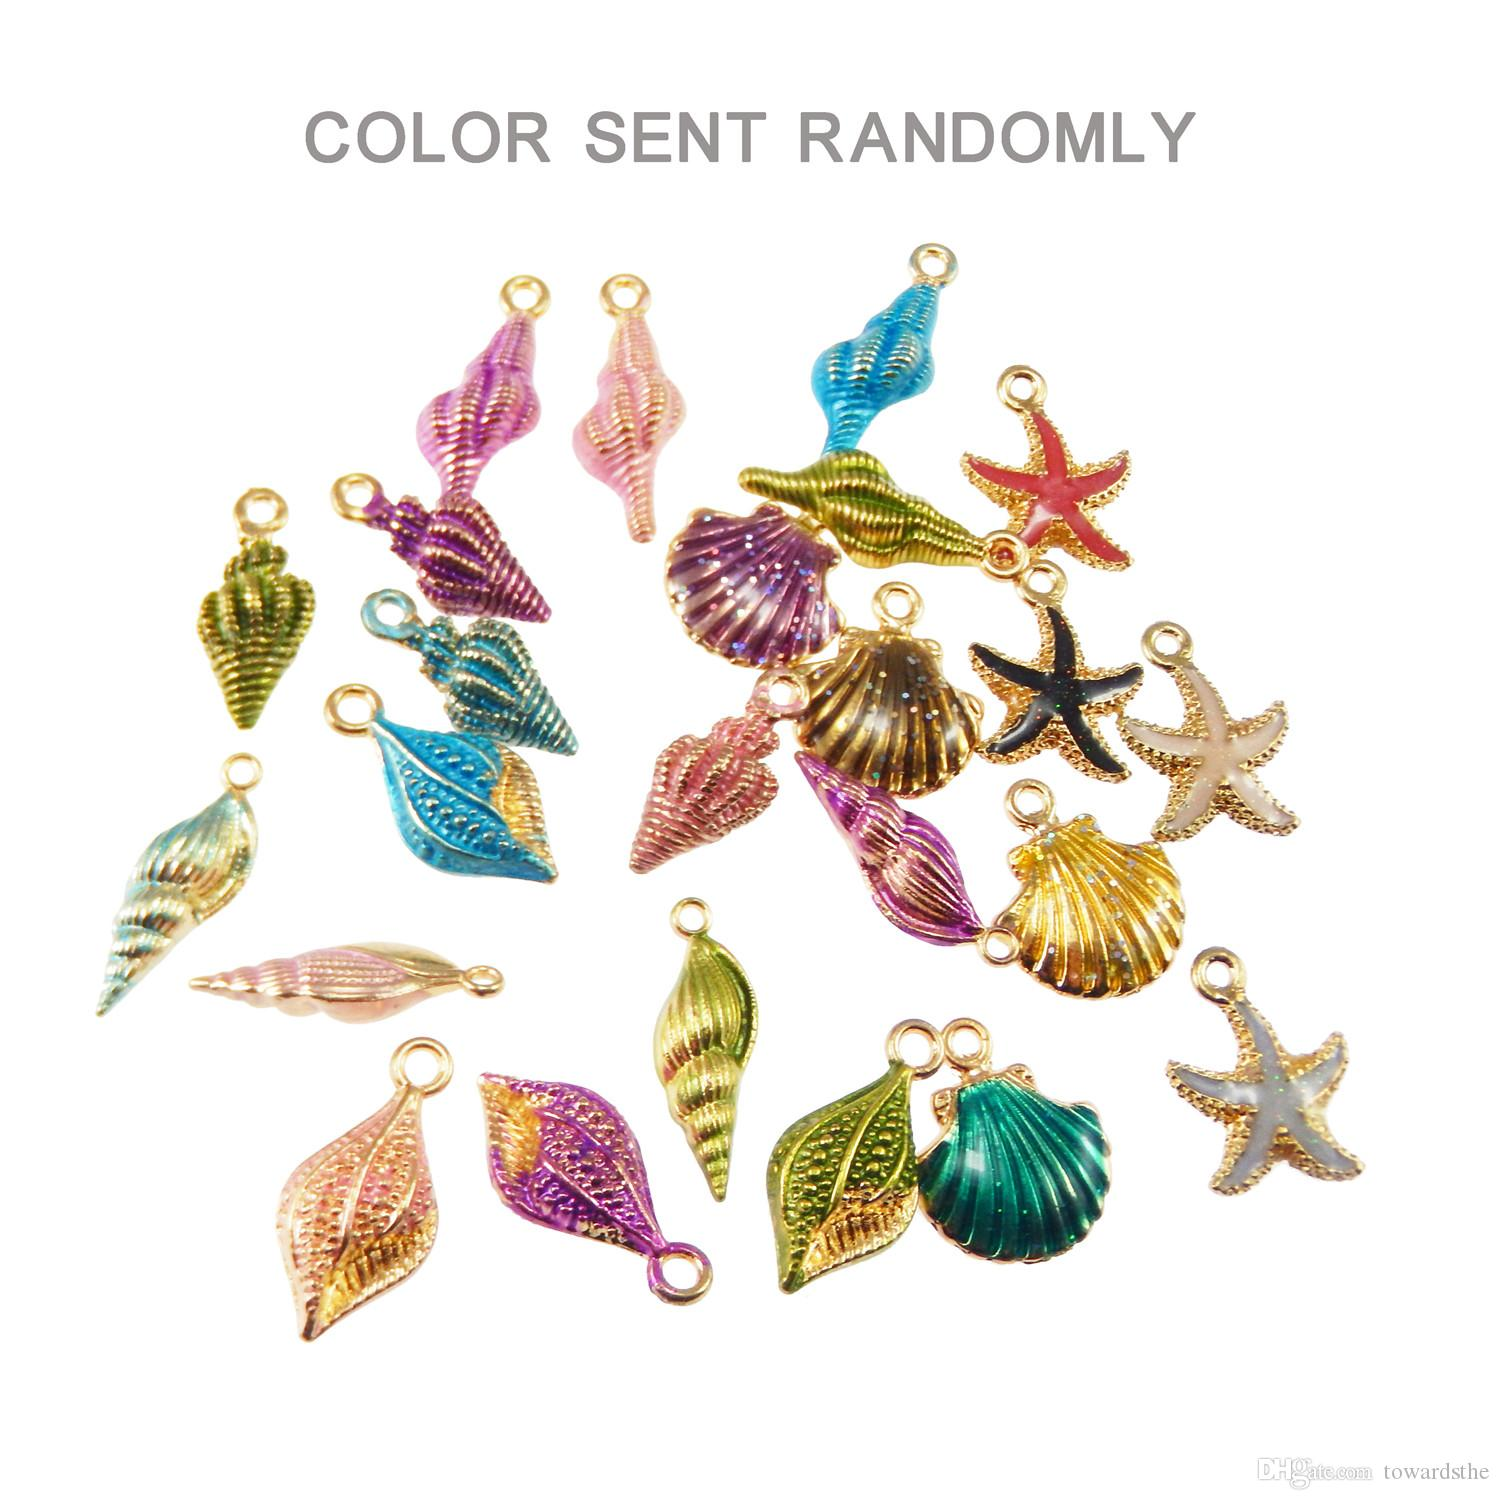 Exquisite ornaments of color alloy enamel mixed shell starfish conch jewelry pendant crafts discovery.Randomly send